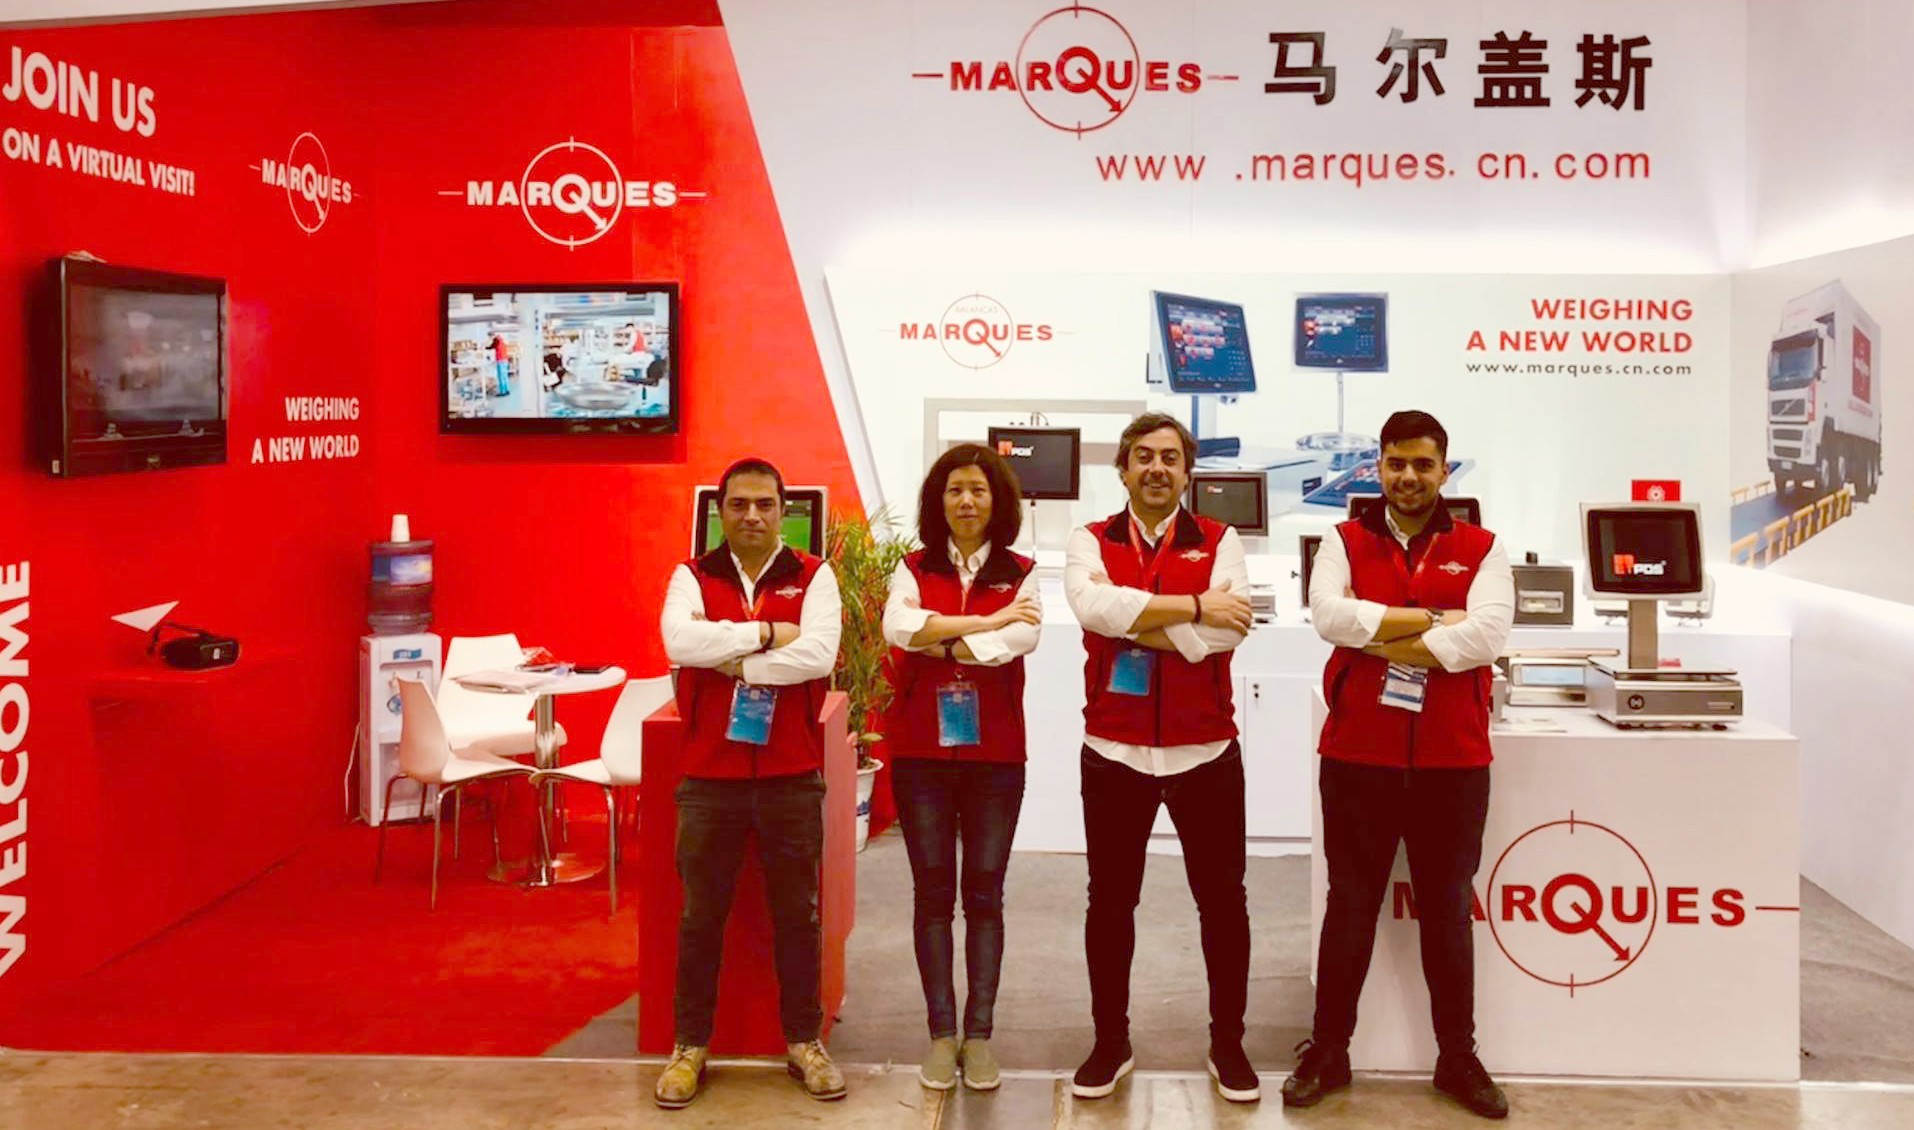 Balanças Marques presents a positive balance of its participation in the largest world weighing fair